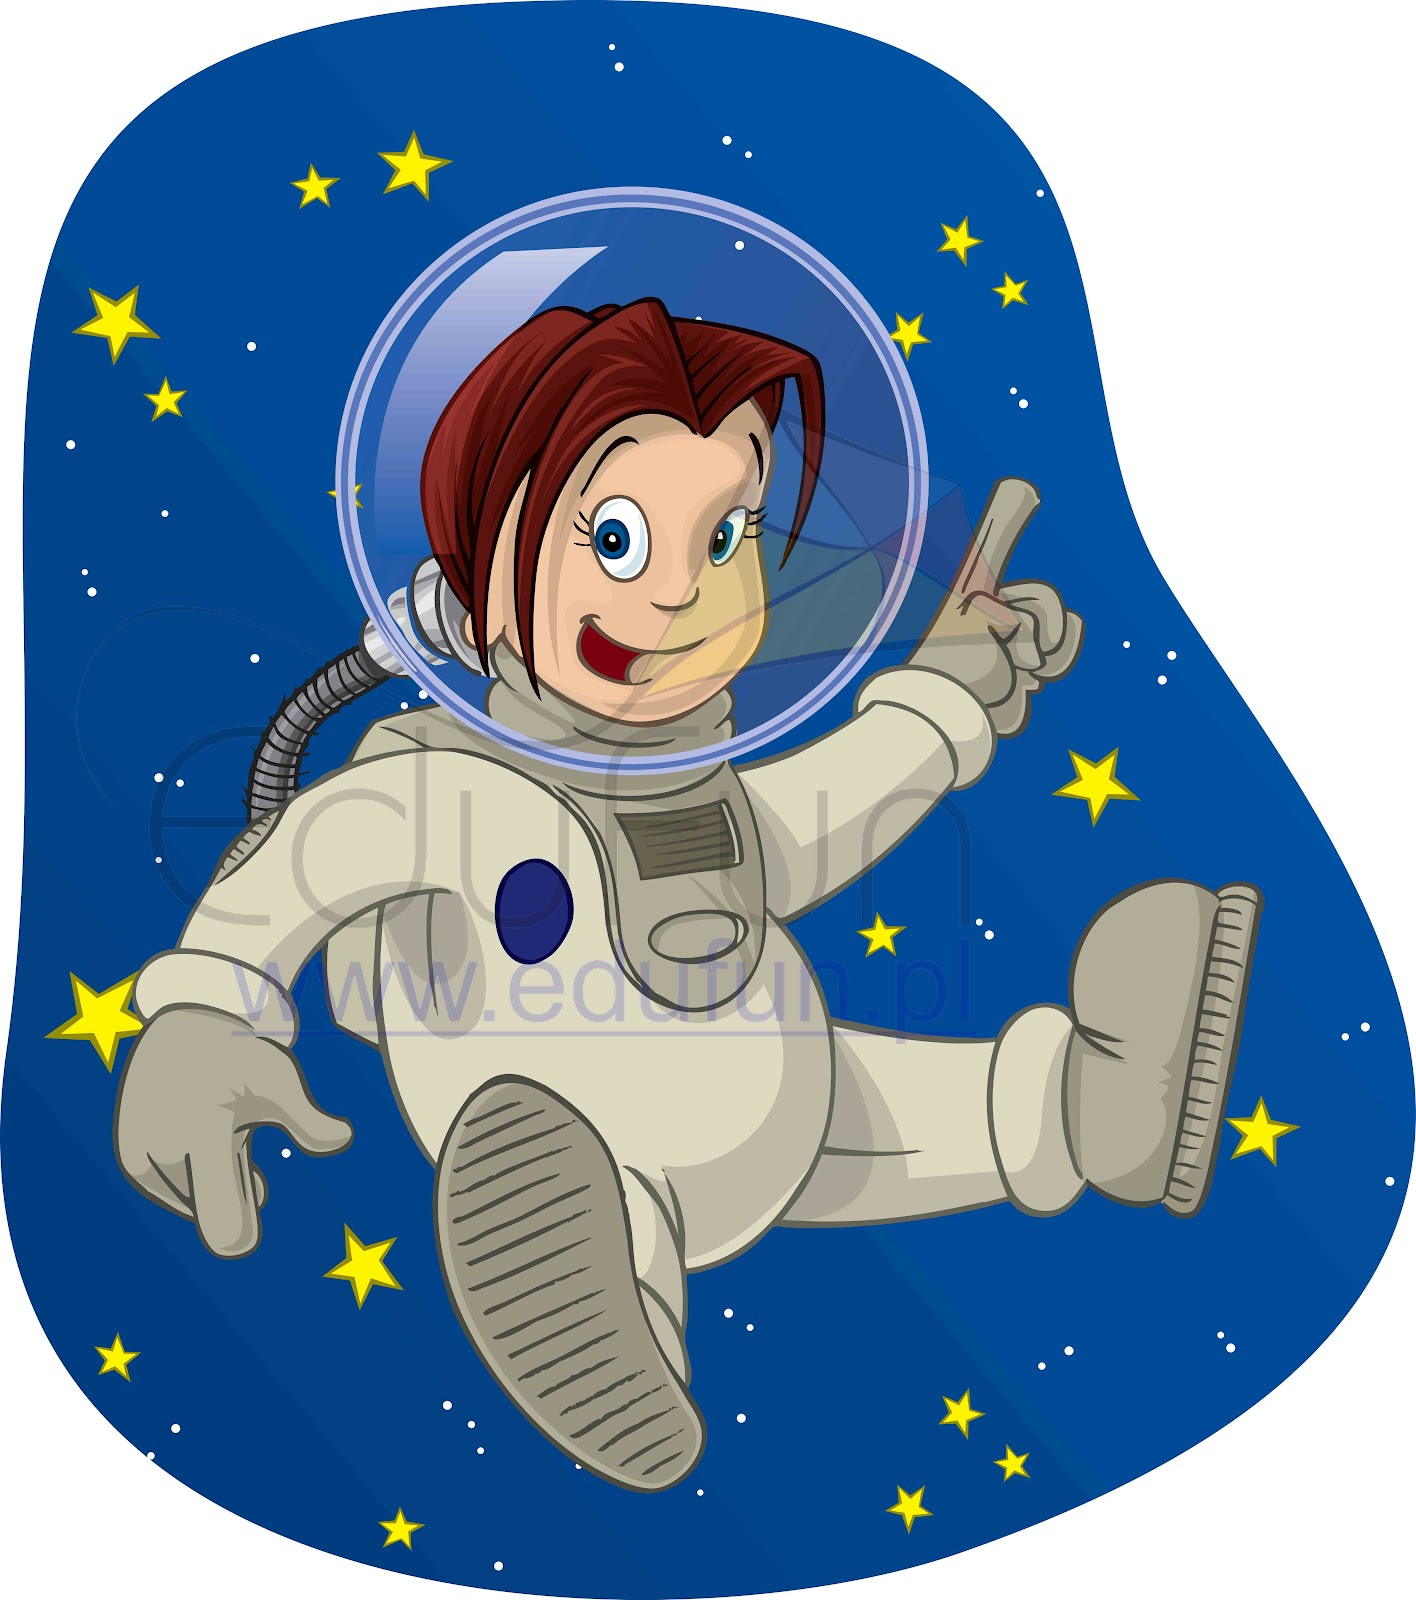 Outer Space Clipart For Kids - fedinvestonline